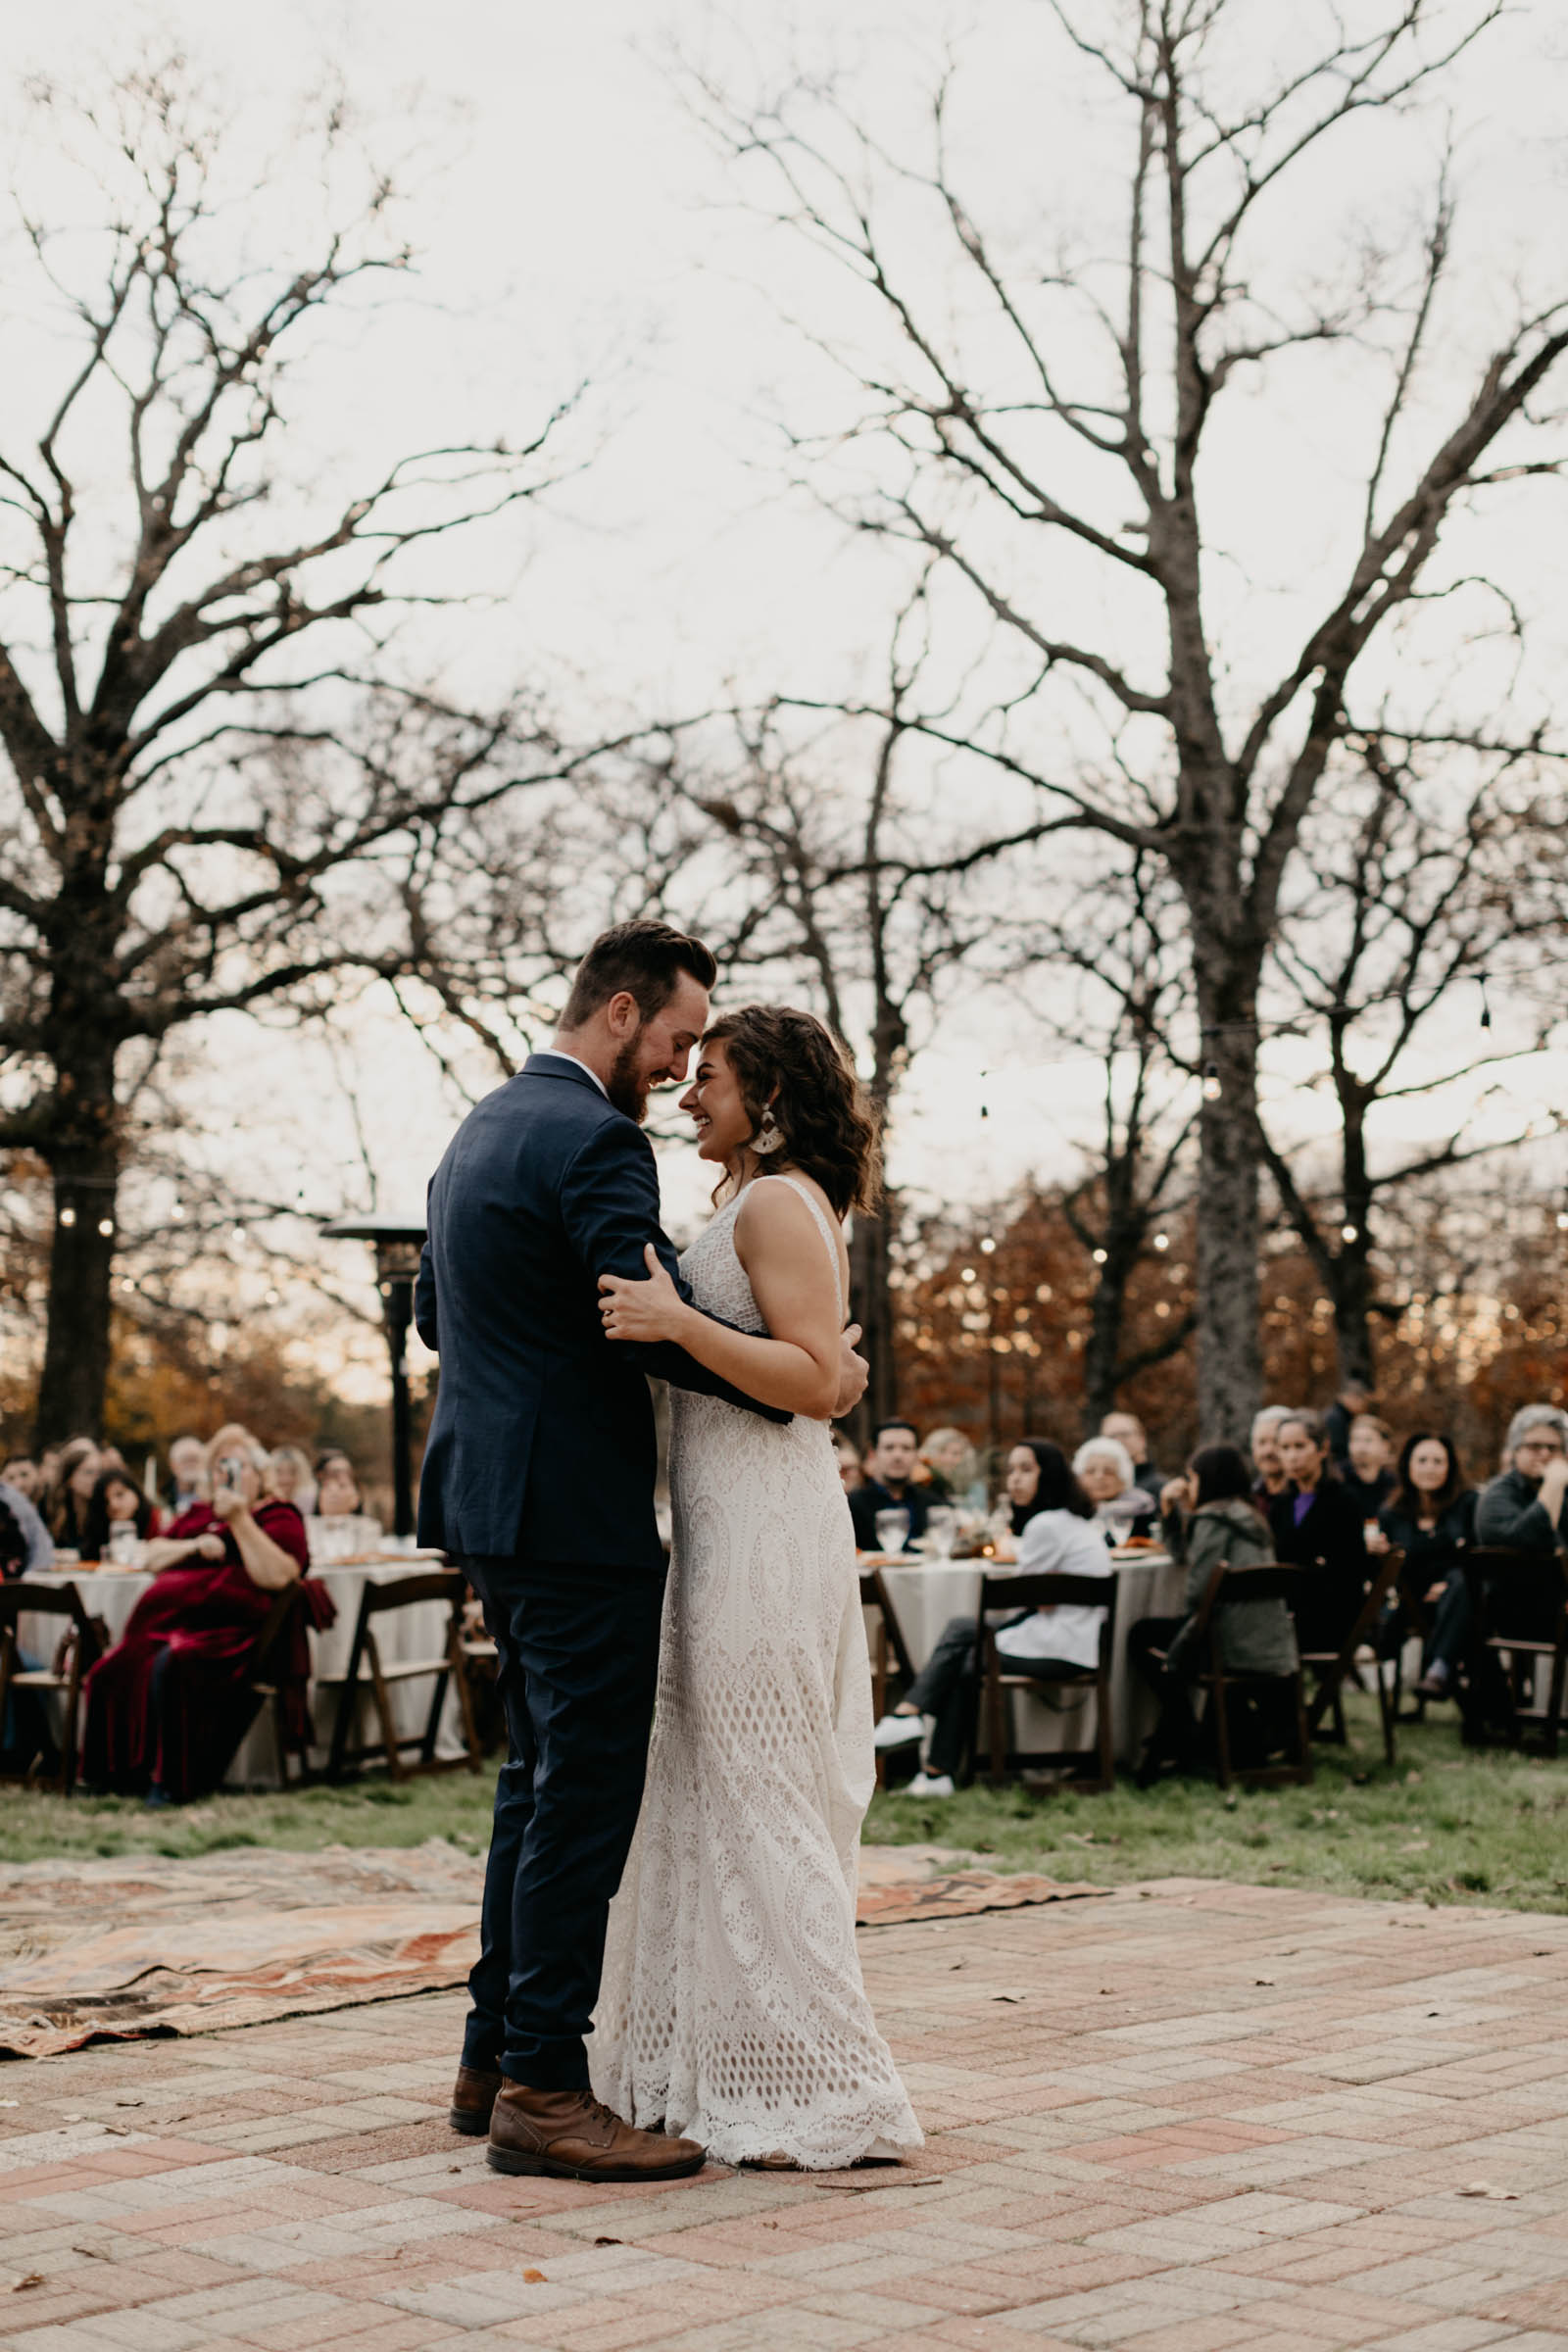 Bride and groom sharing first dance outdoors on their backyard porch